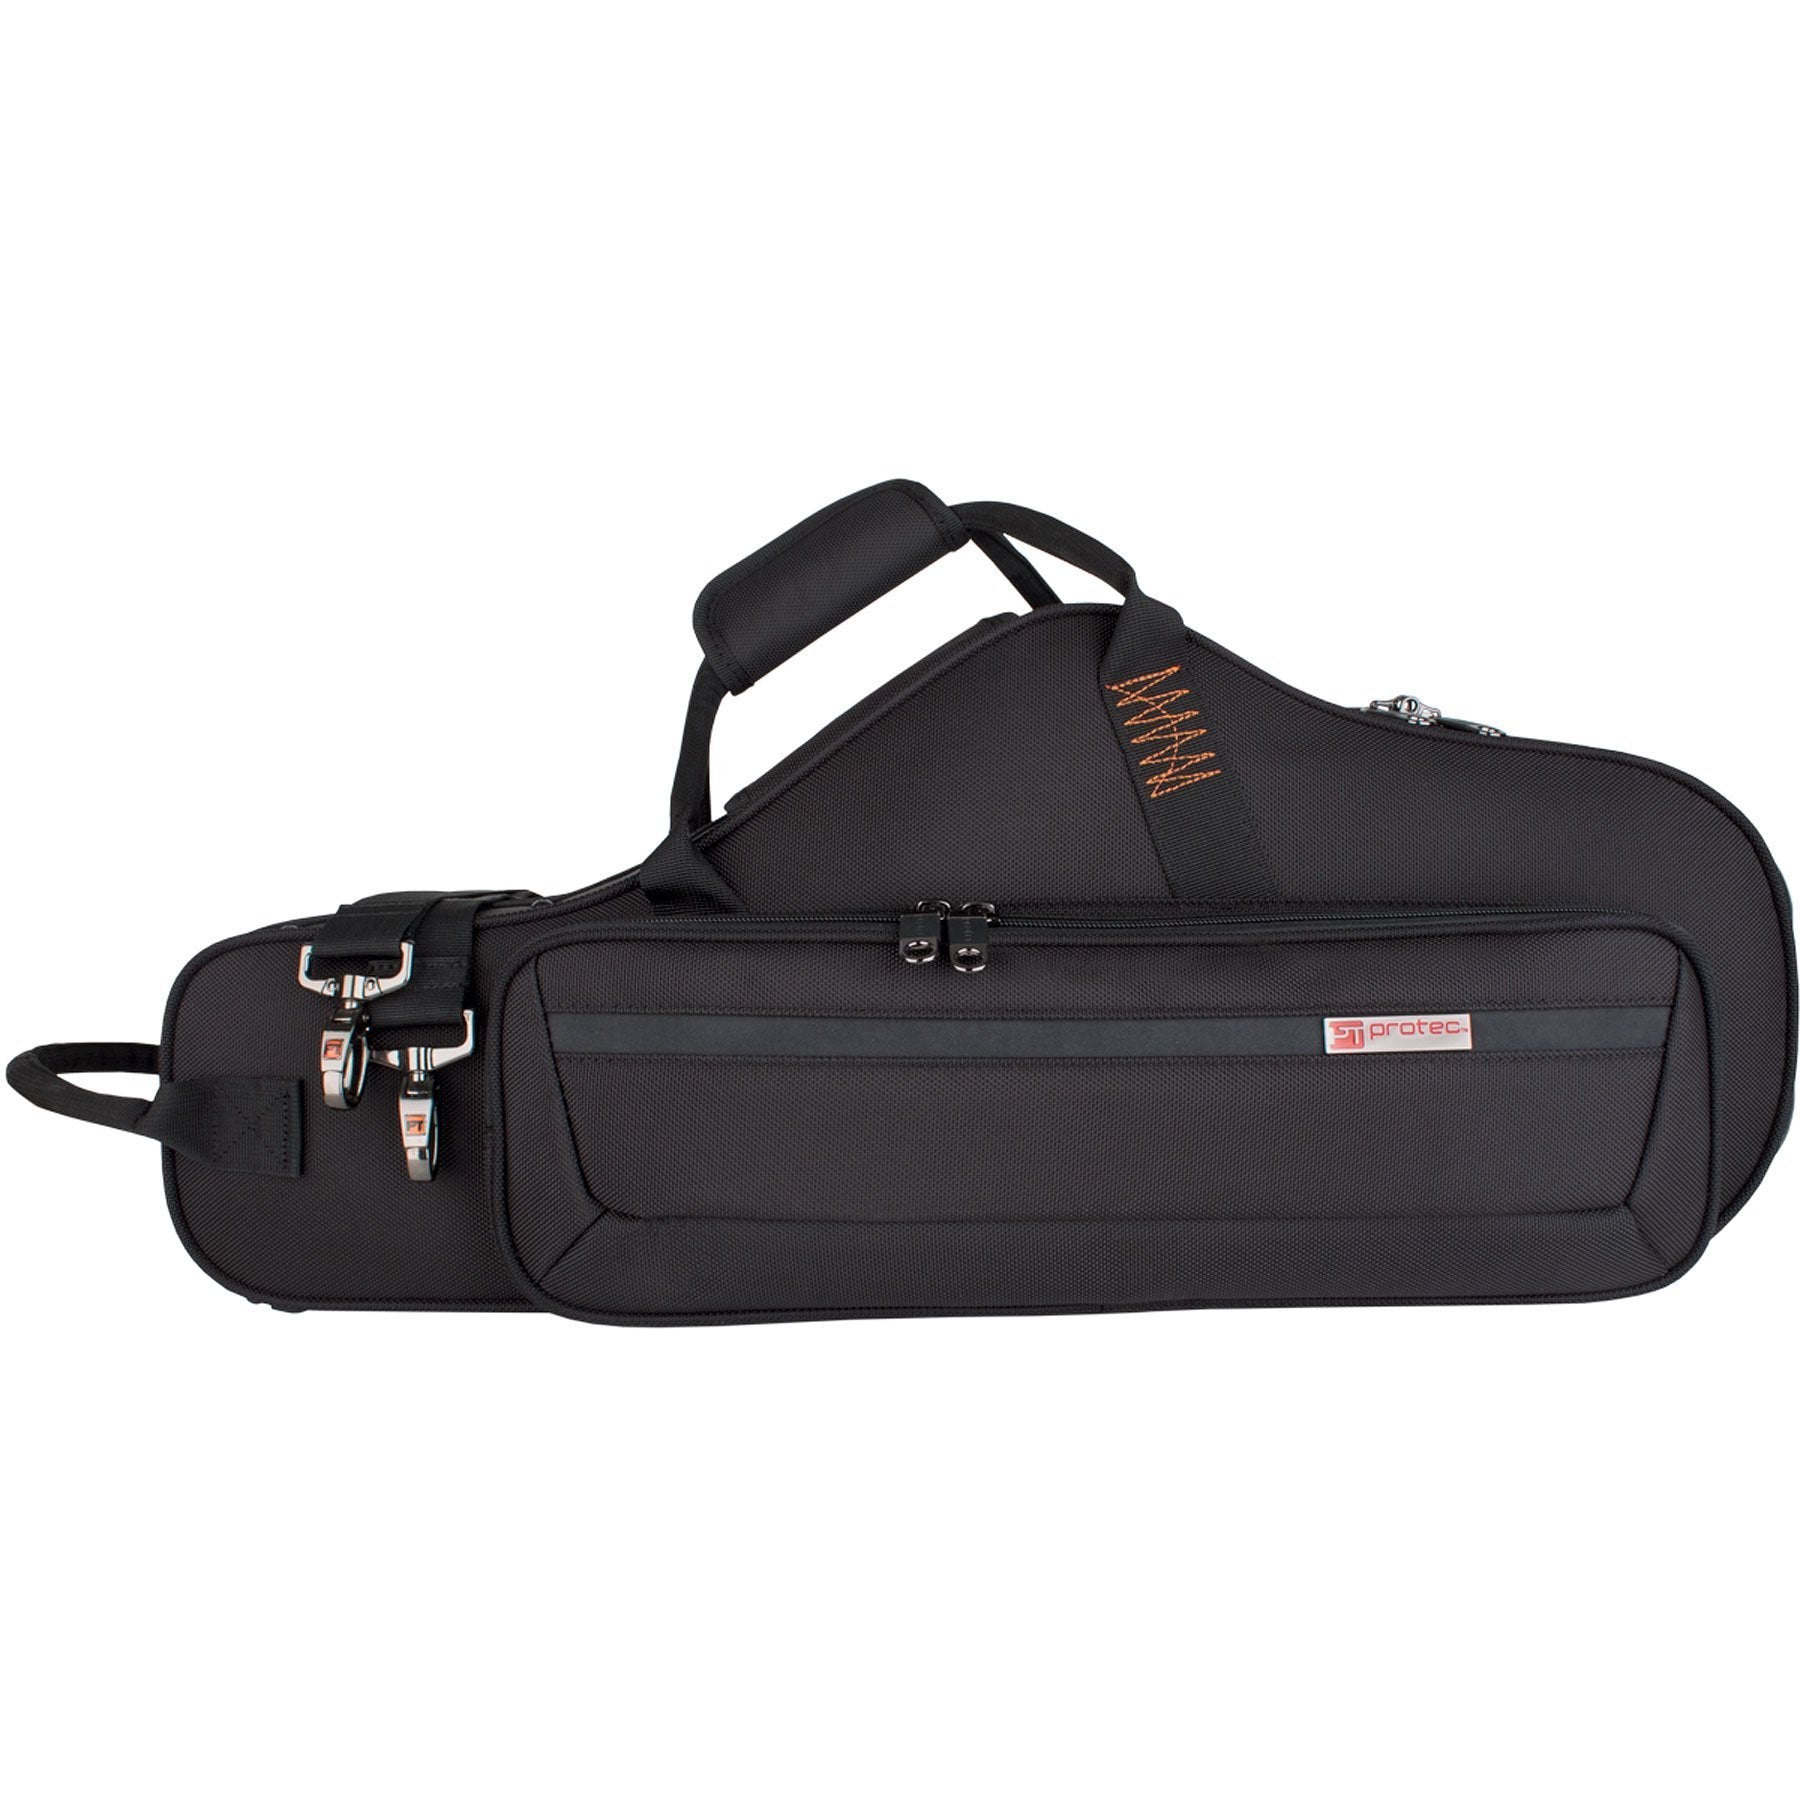 Protec - Alto Saxophone PRO PAC Case (Contoured)-Accessories-Protec-Black-Music Elements